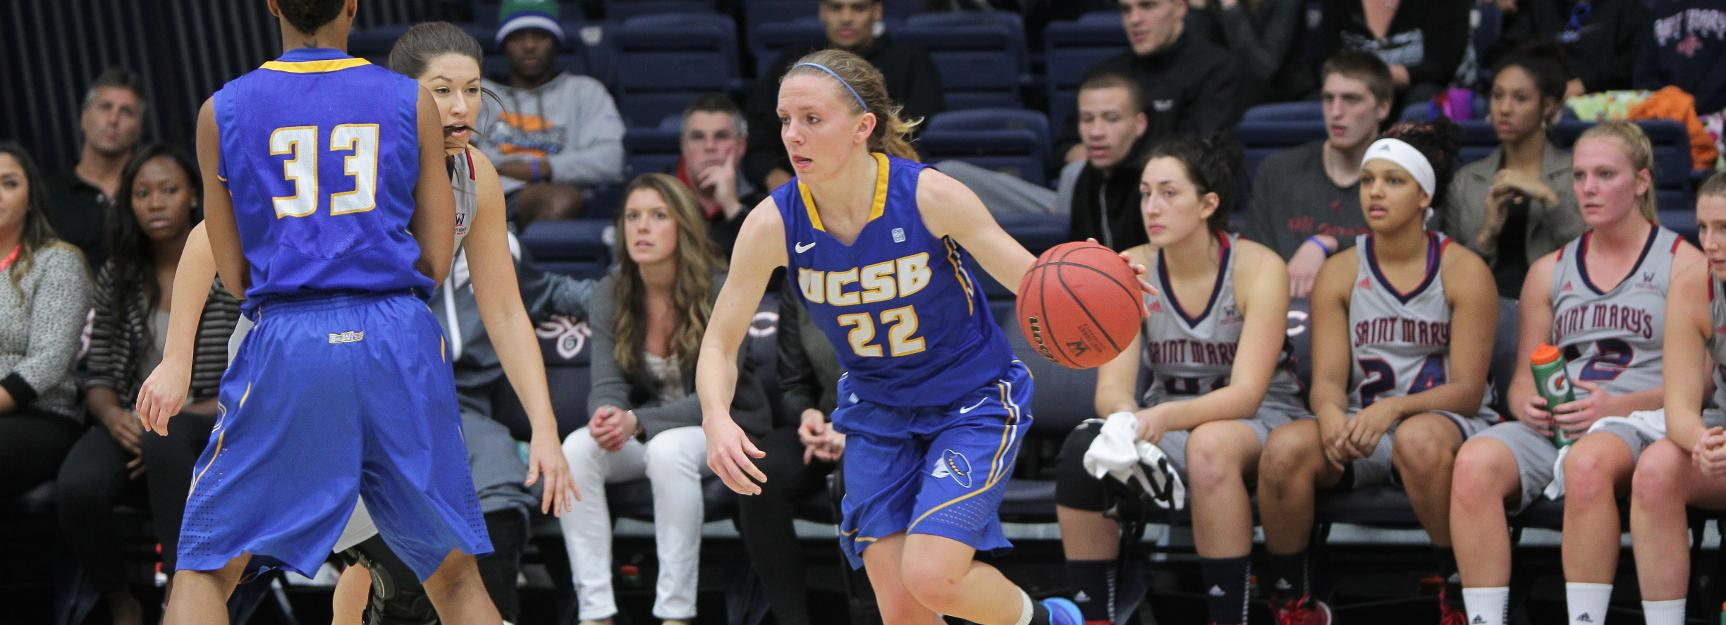 Zornig's Double Double Not Enough at CSUN, UCSB Falls 78-54